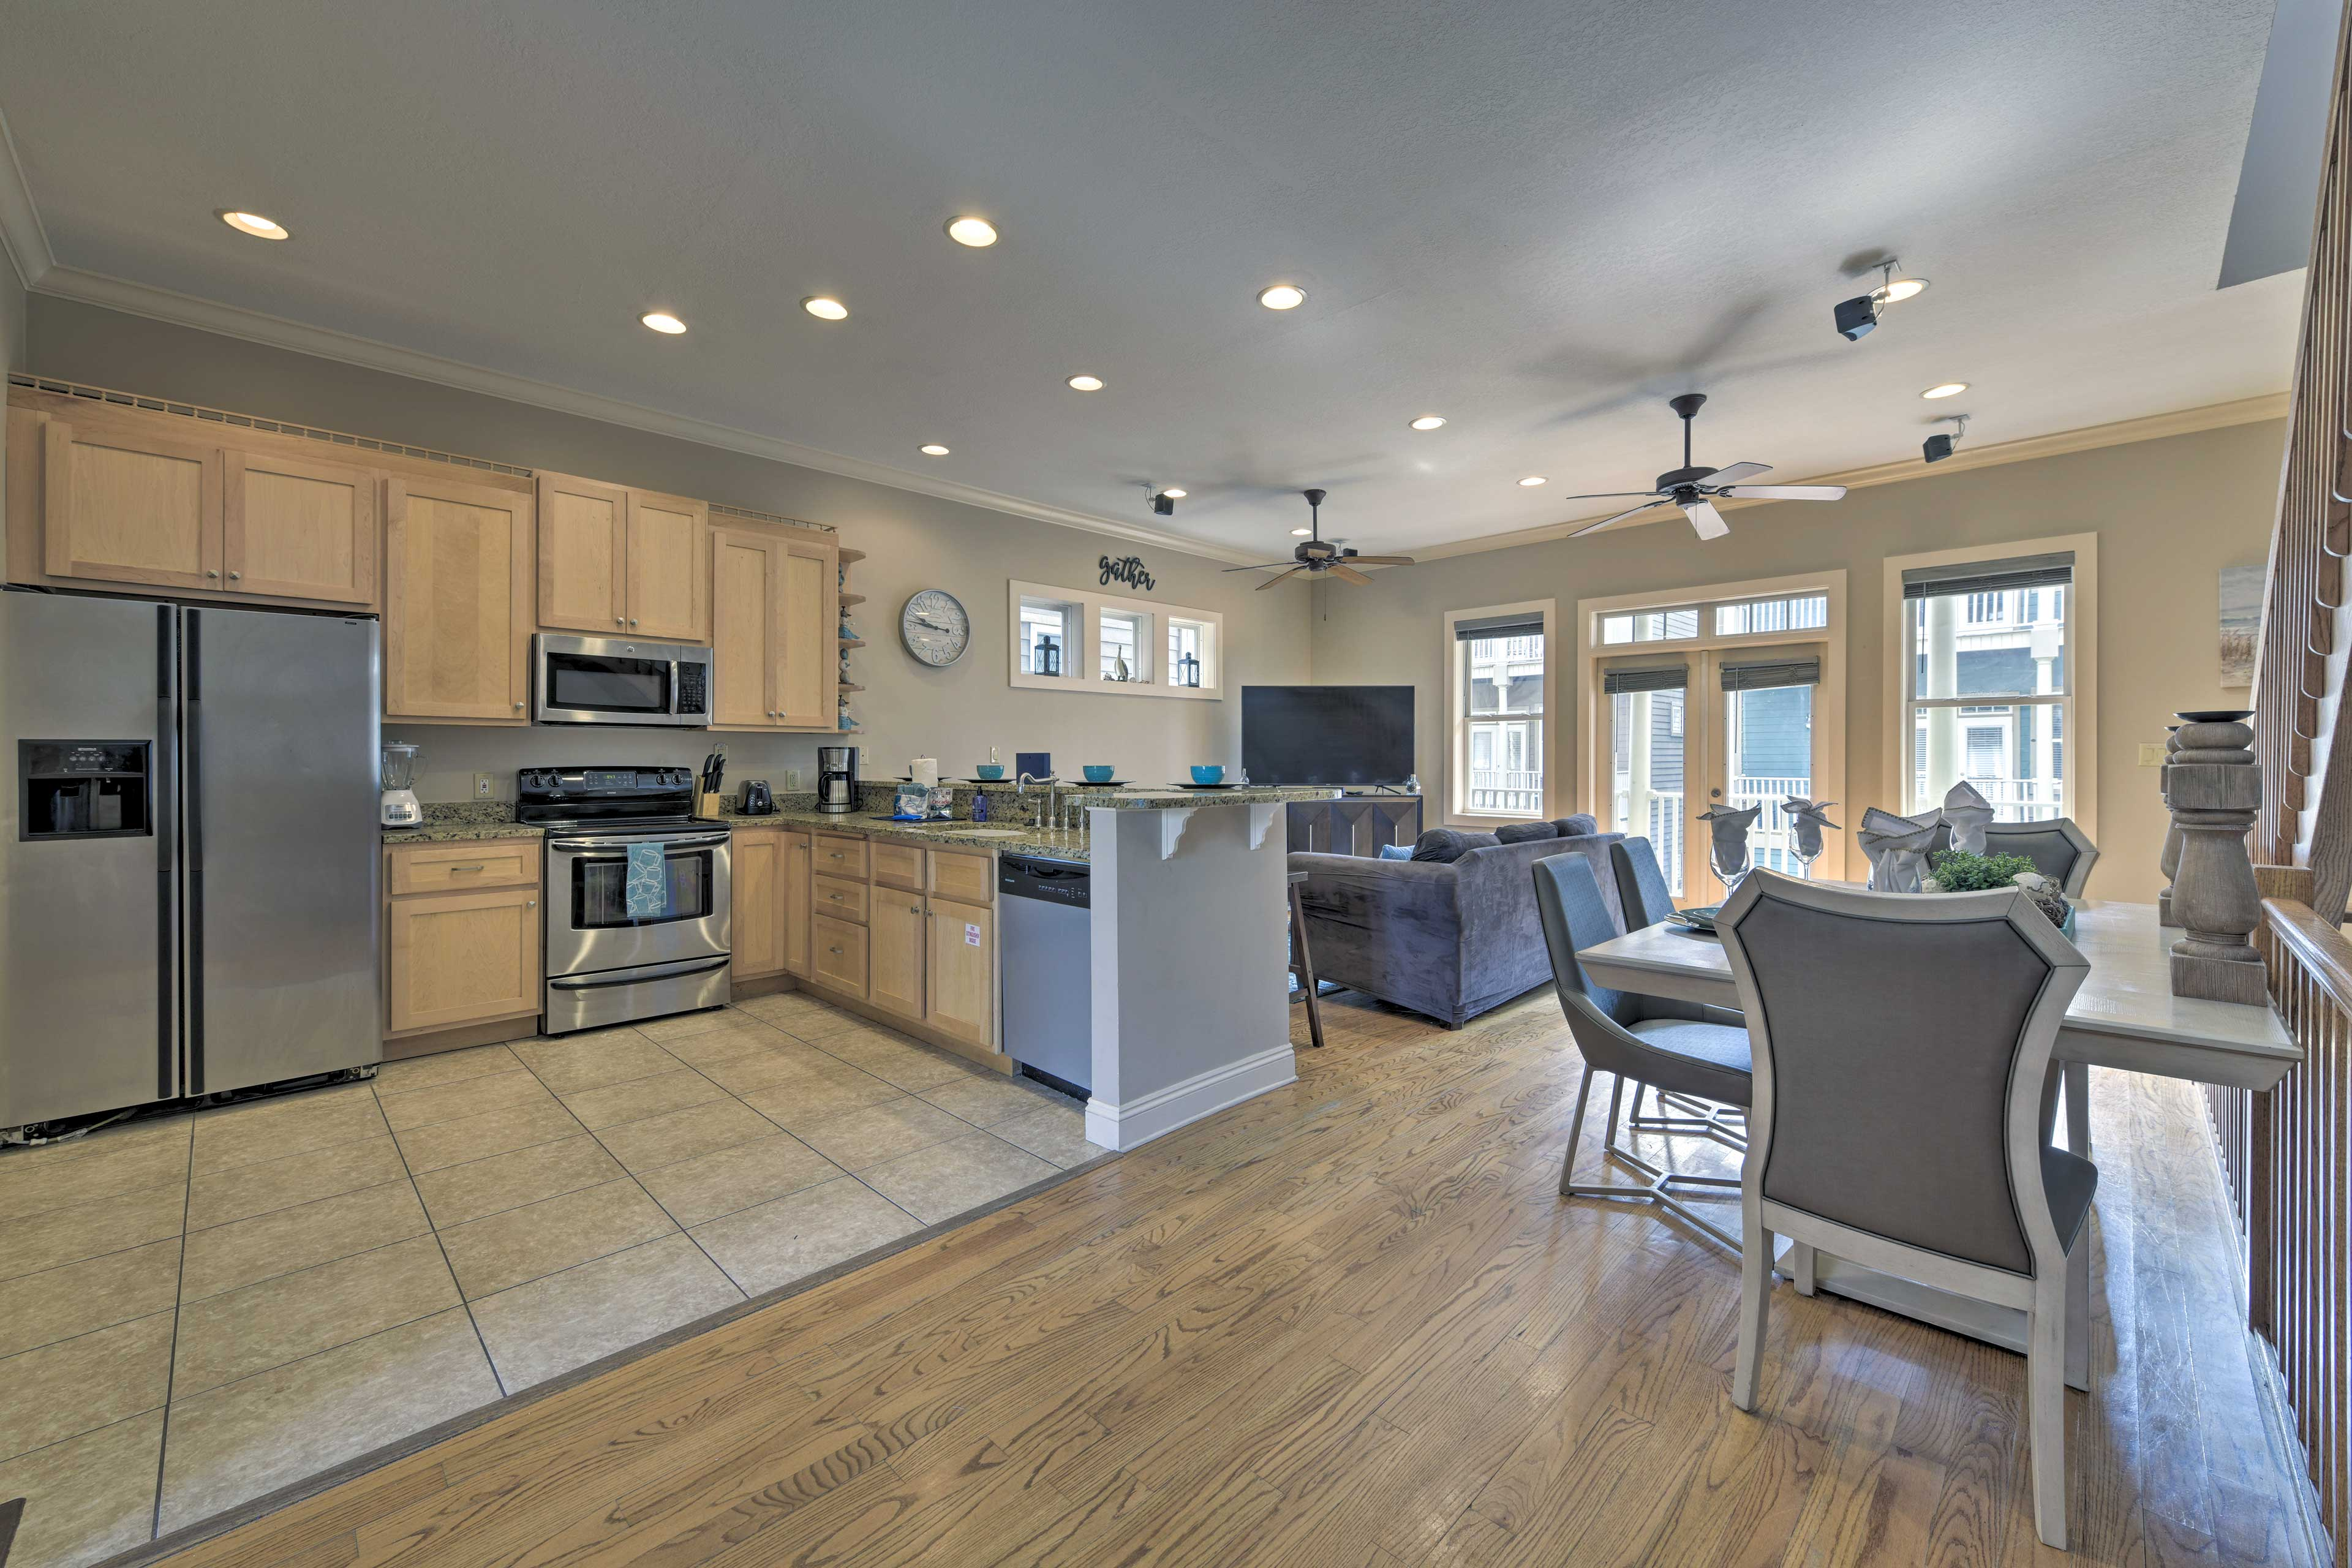 The property boasts nearly 3,000 square feet of living space.